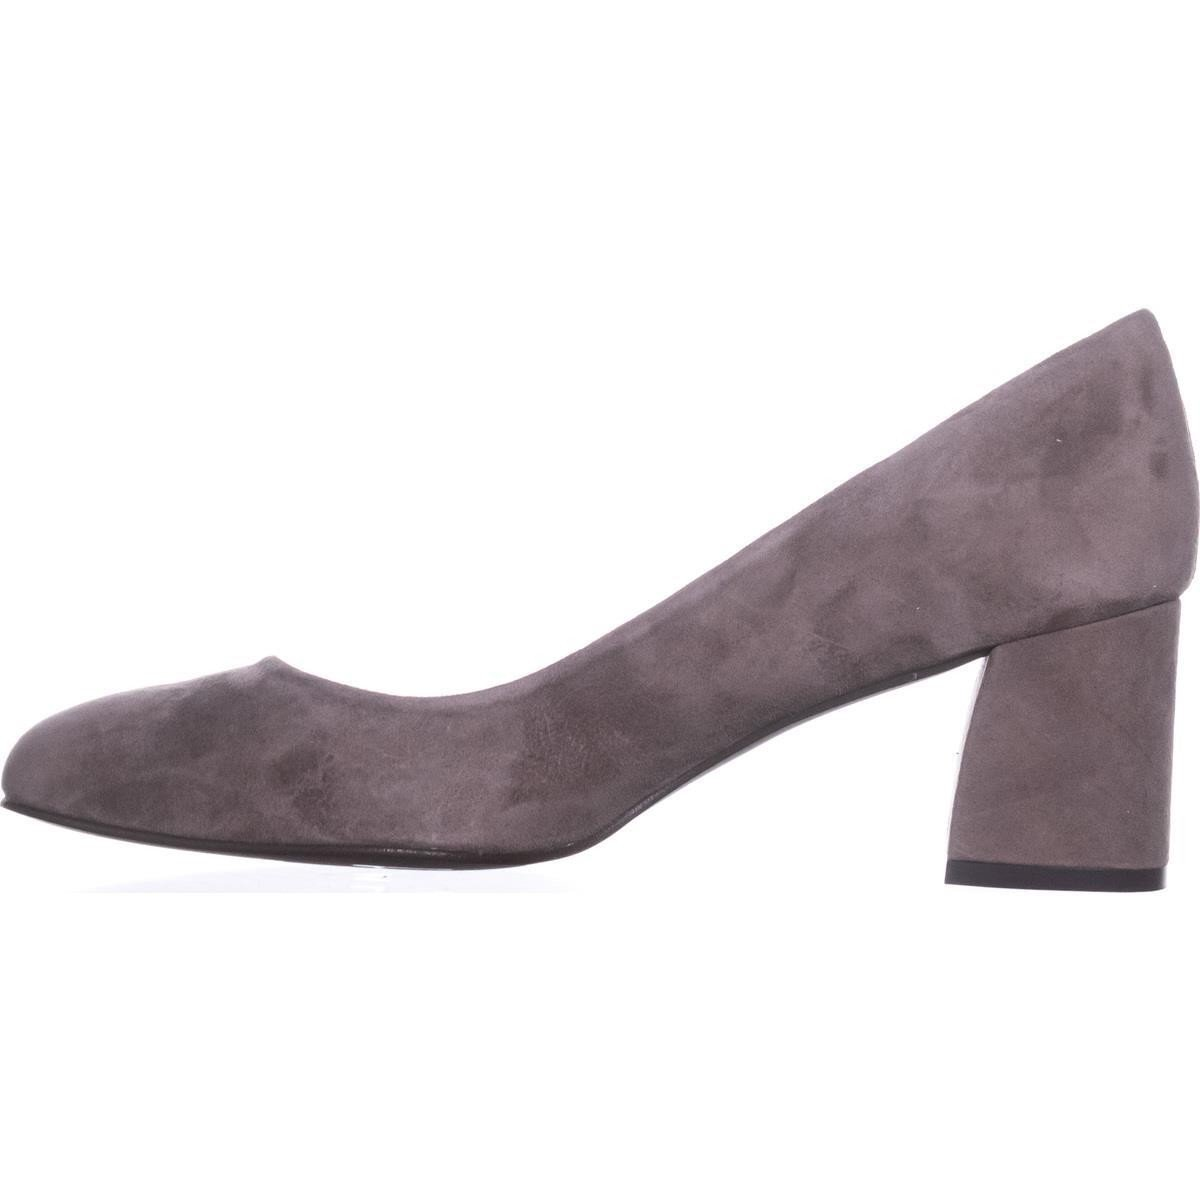 French Sole Womens Trance Suede Round Toe Classic Pumps B07DPKFM4H 10.5 B(M) US|Taupe Suede